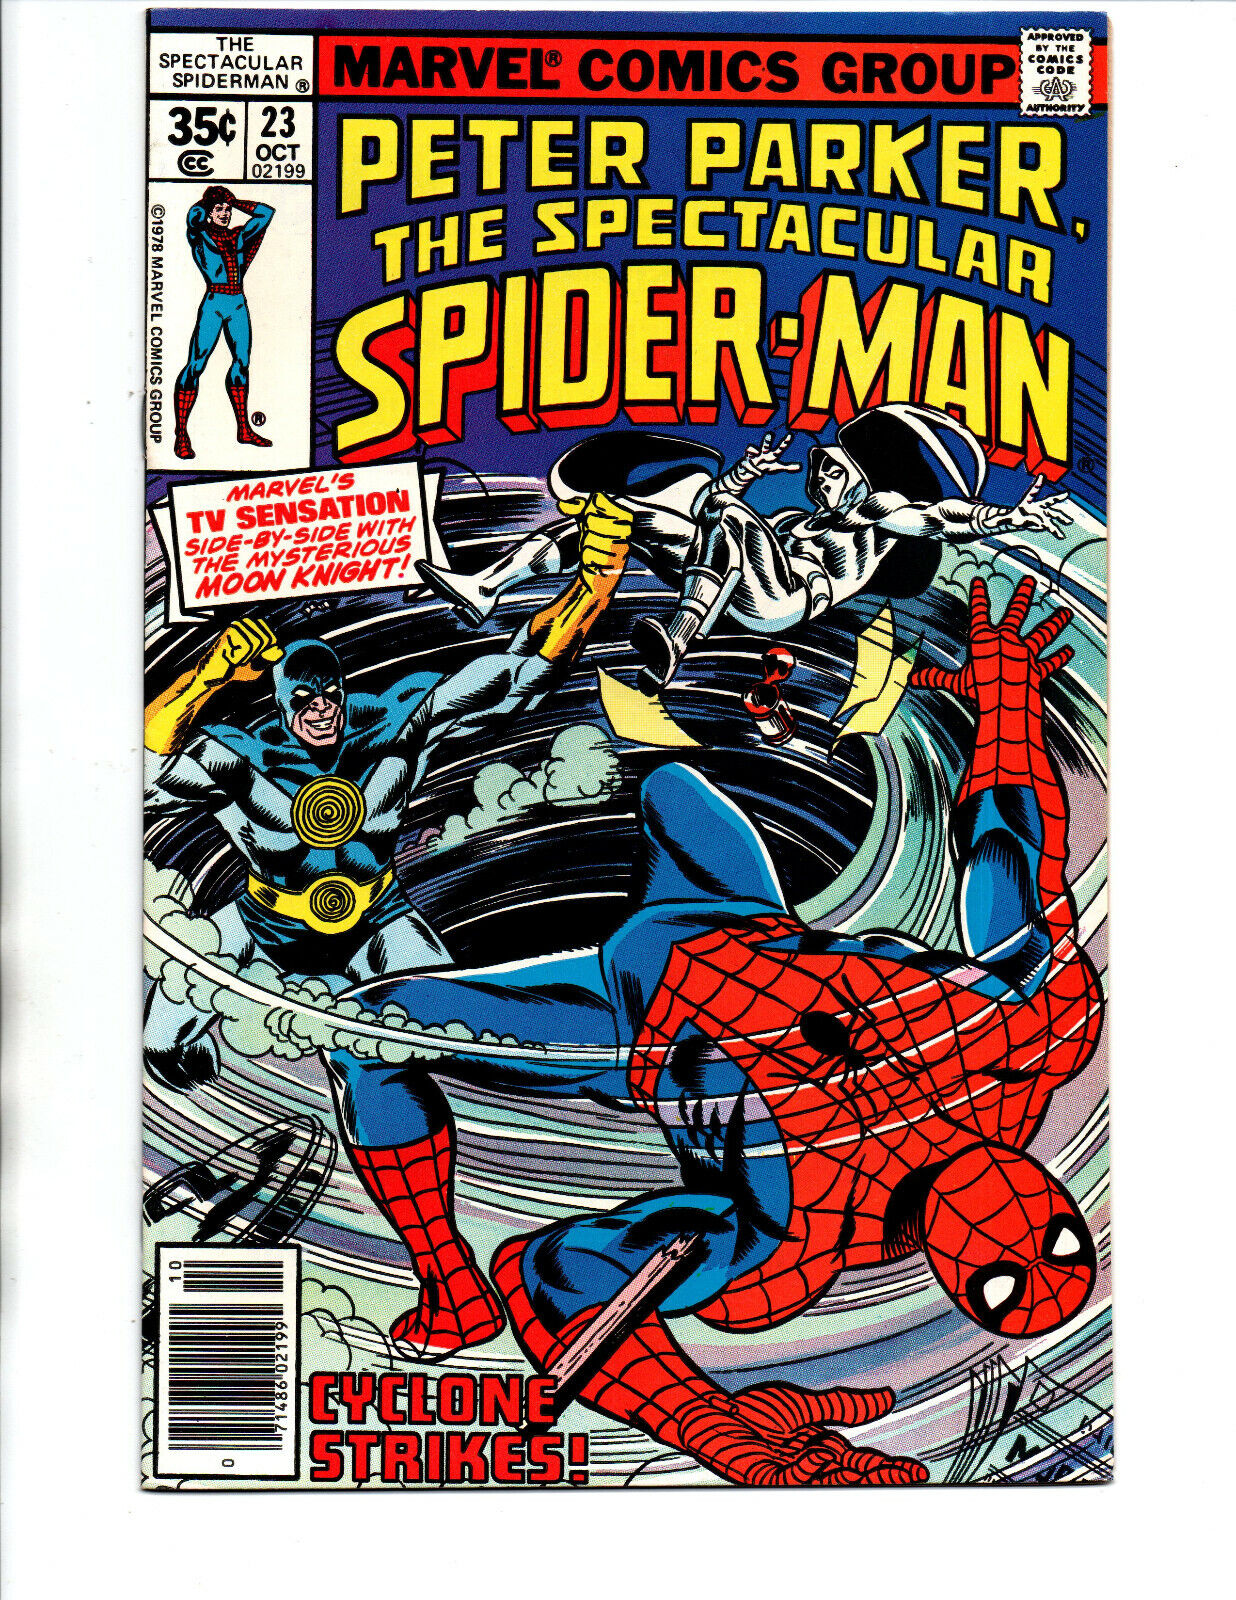 Peter Parker the Spectacular Spider-man #23 newsstand - Moon Knight -1978- VF/NM